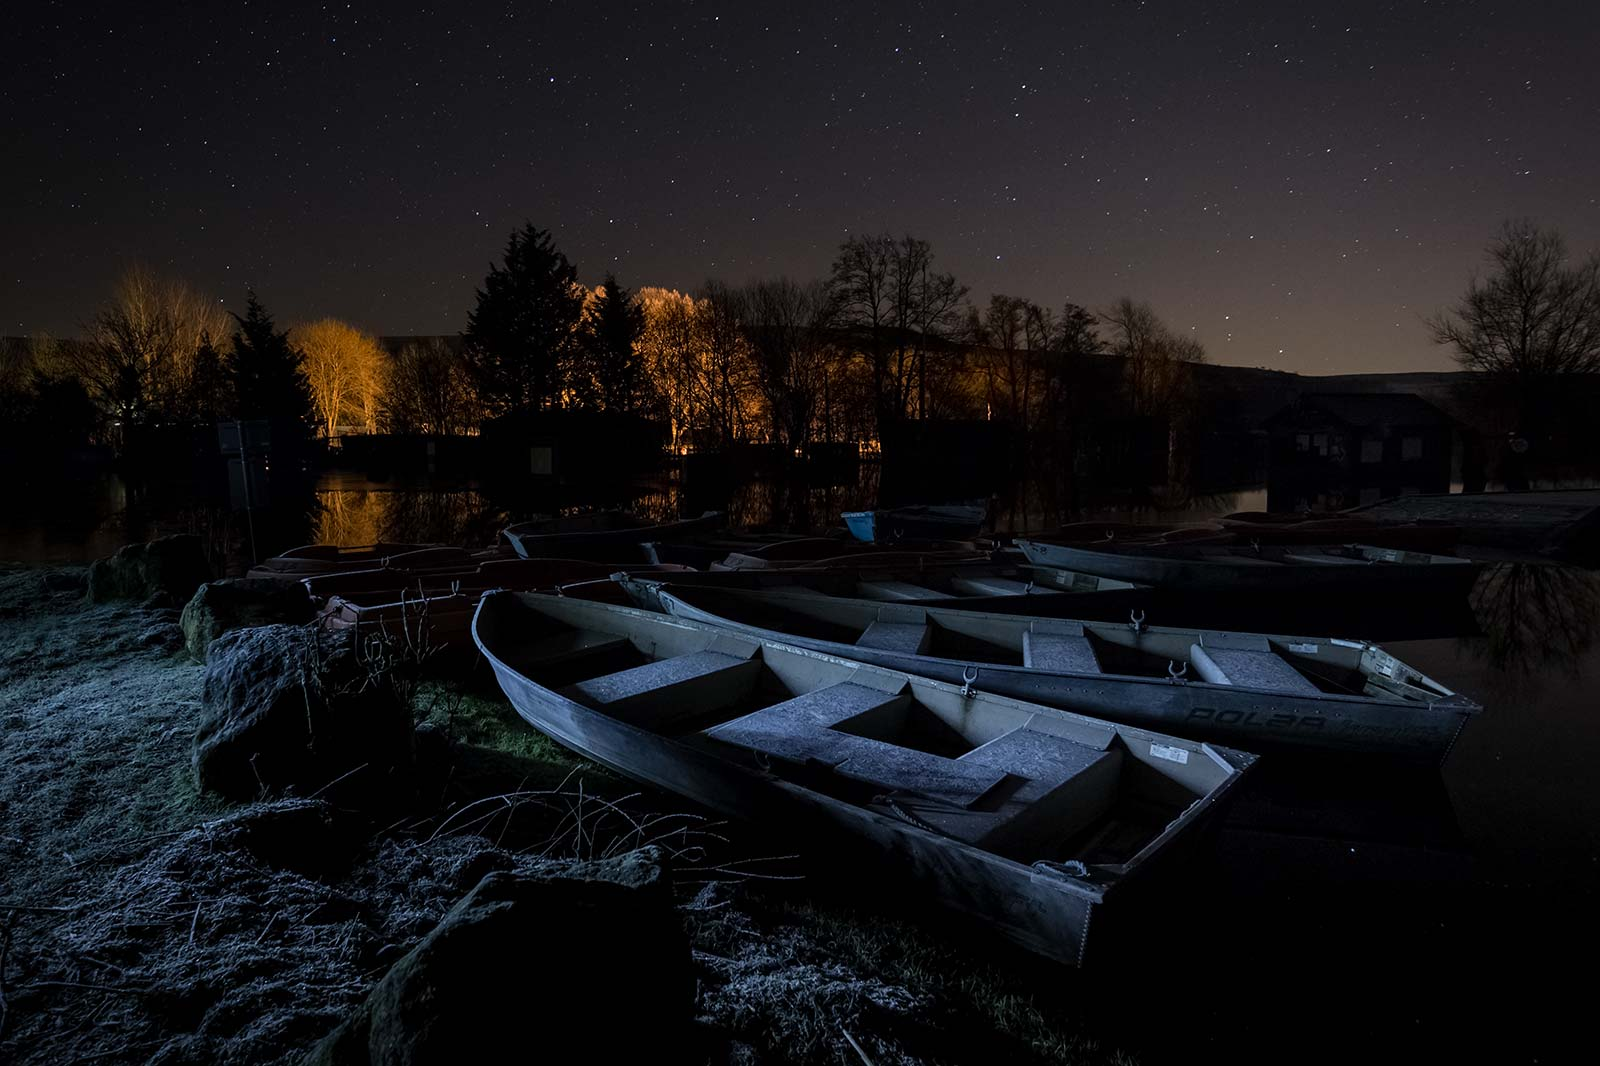 Frozen Boats Huddle For Warmth